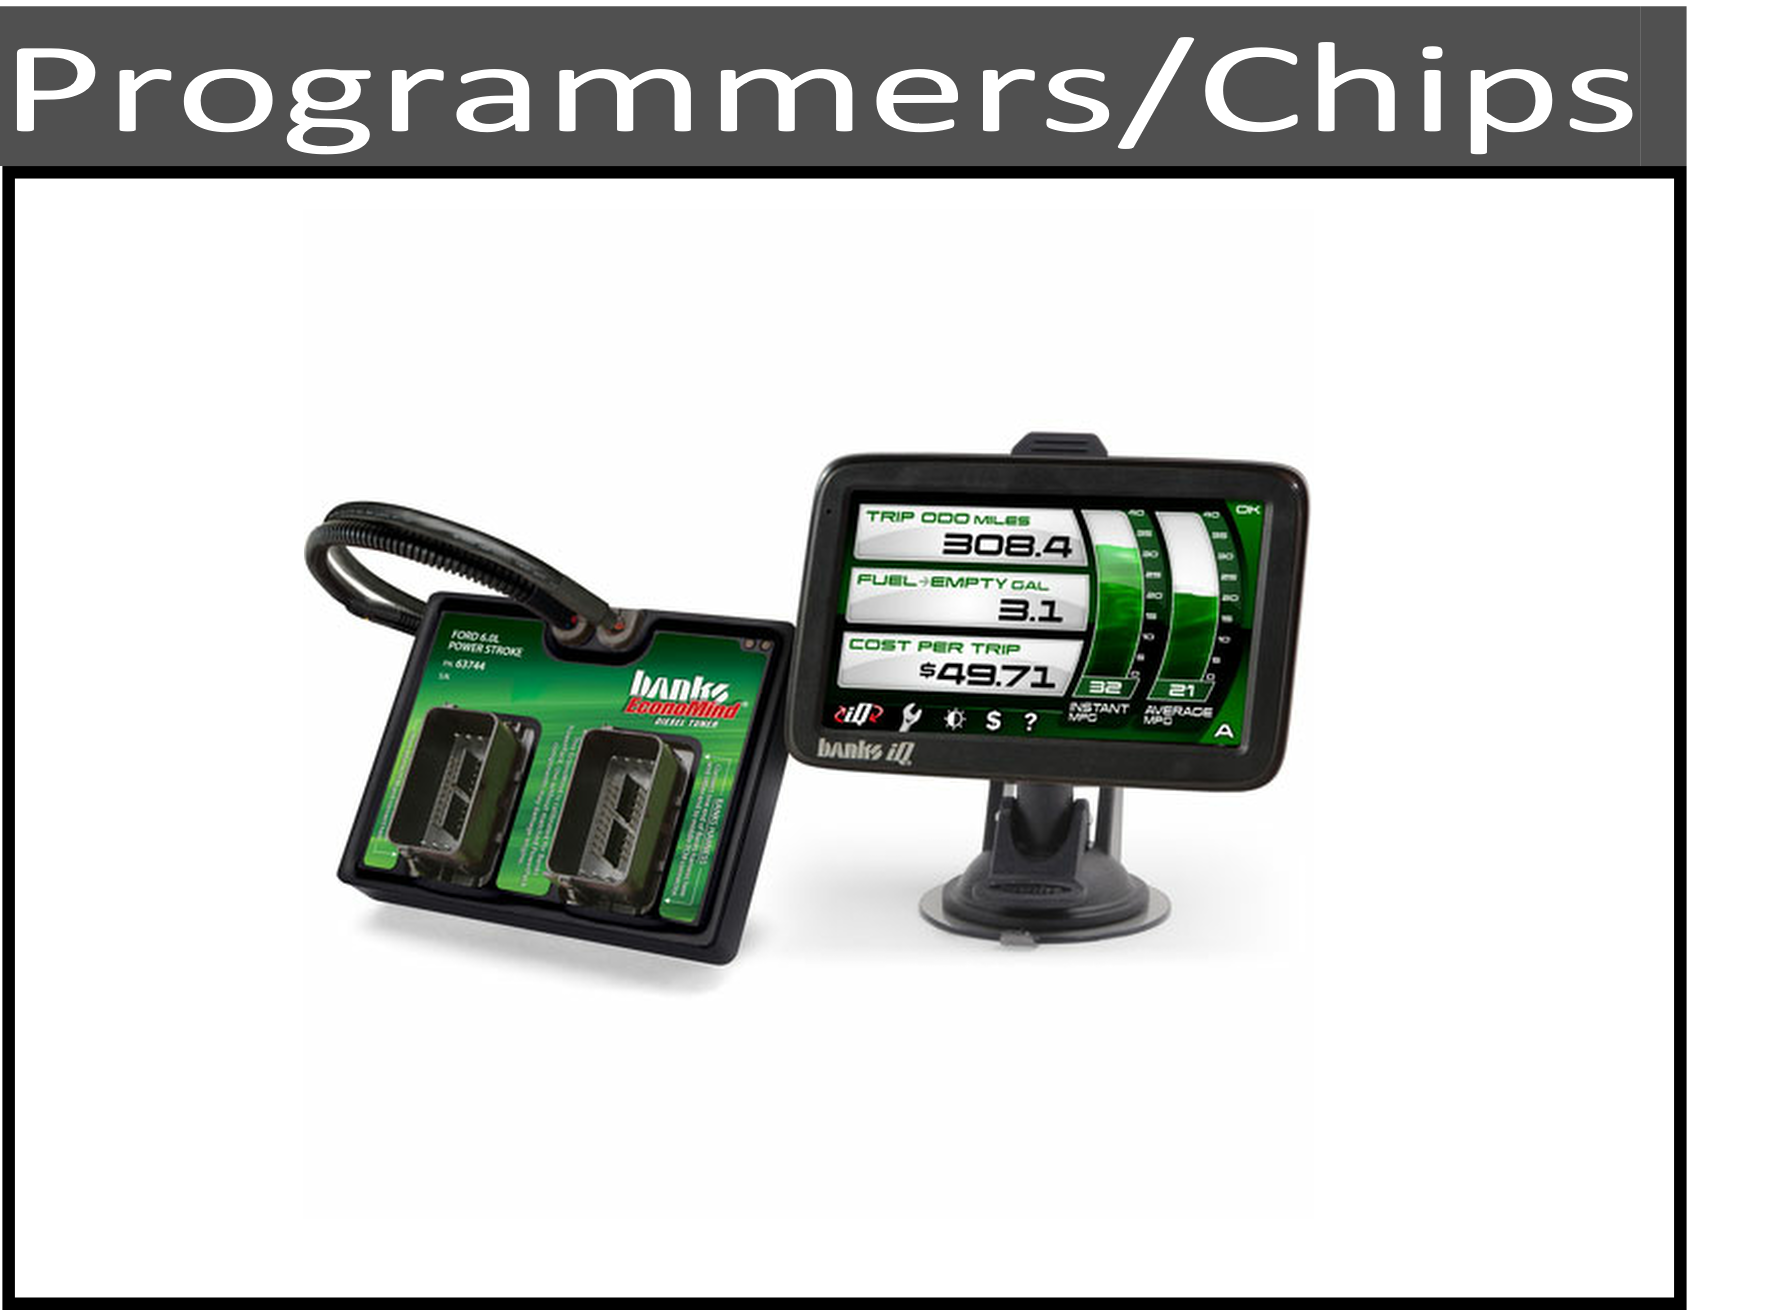 Programmers, Chips, and Power Modules